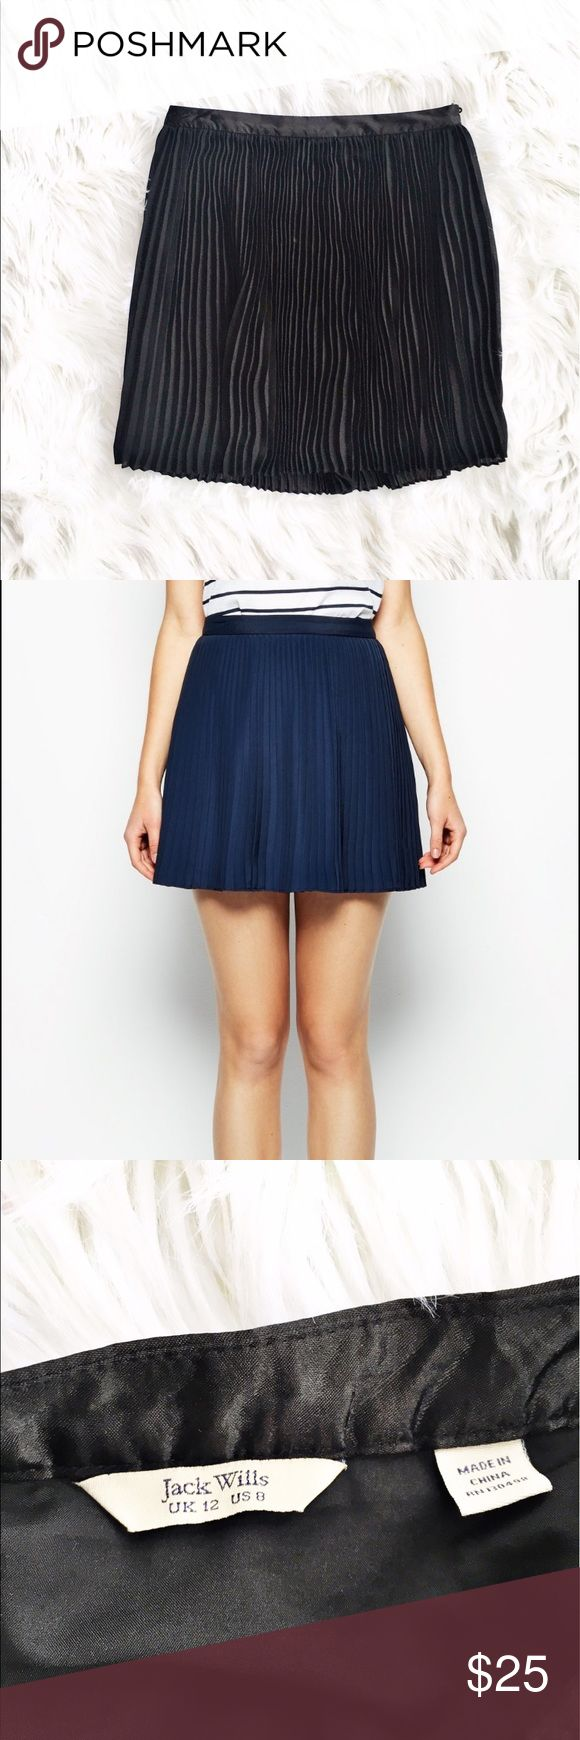 """Jack Wills Briony pleated skirt Adorable black pleated Briony mini skirt from Jack Wills, size 8. Satin waistband with concealed side zipper. 2nd picture is the same skirt in navy to showcase fit. Excellent condition. Flat measurements are waist 15"""", hips free, length 18"""". Jack Wills Skirts Mini"""